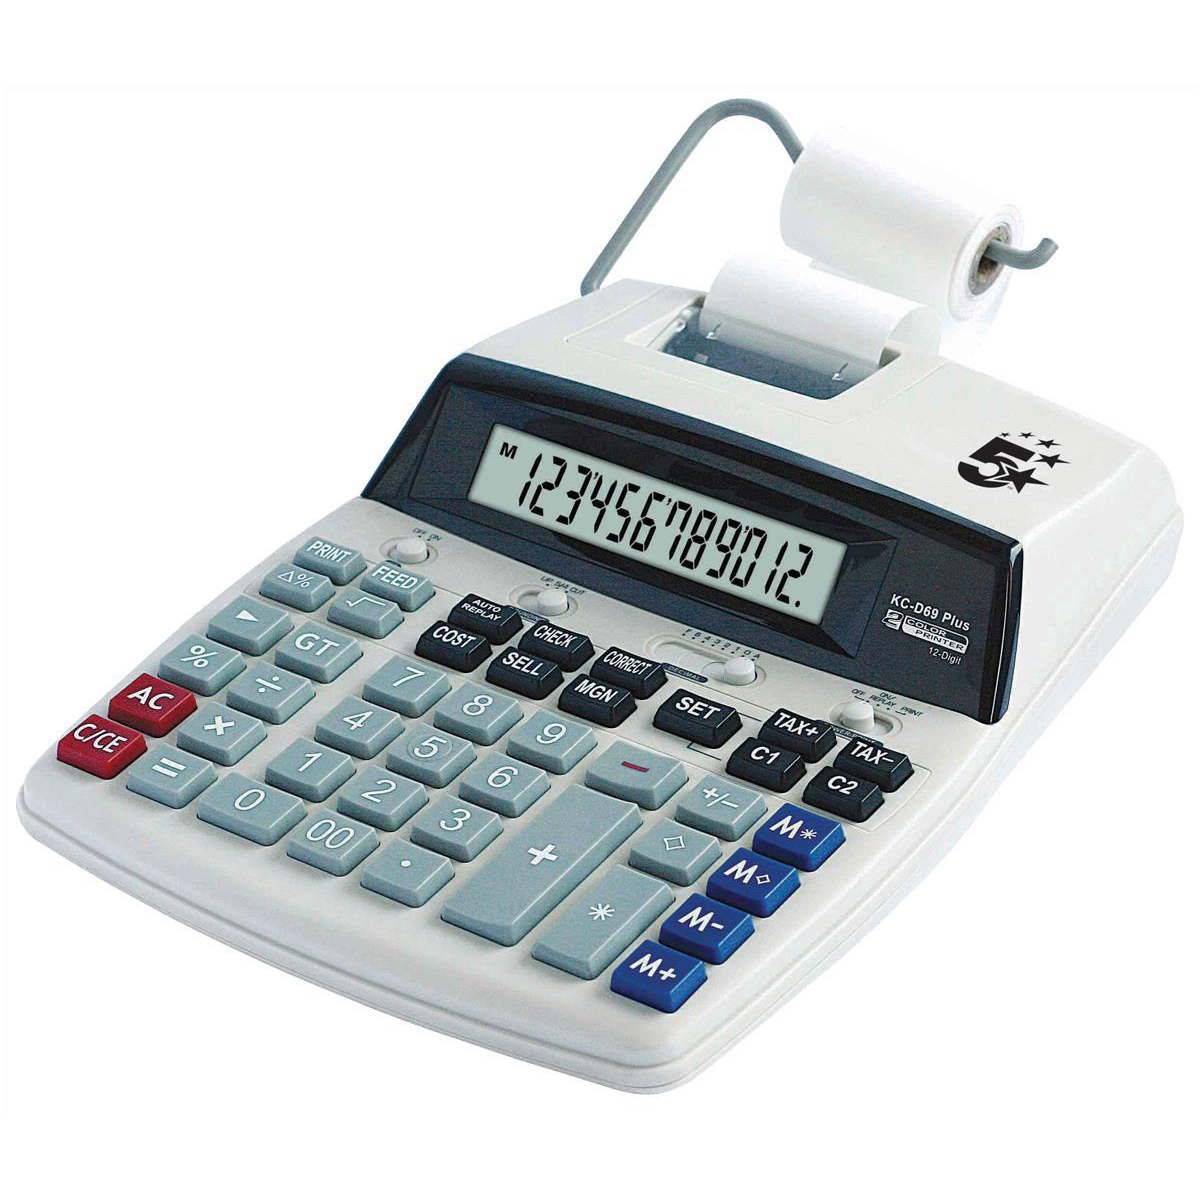 Printing Calculator 5 Star Office Desktop Printing Calculator 12 Digit Display 2 Colour Print 2.7 Lines/Sec 198x65x260mm Grey